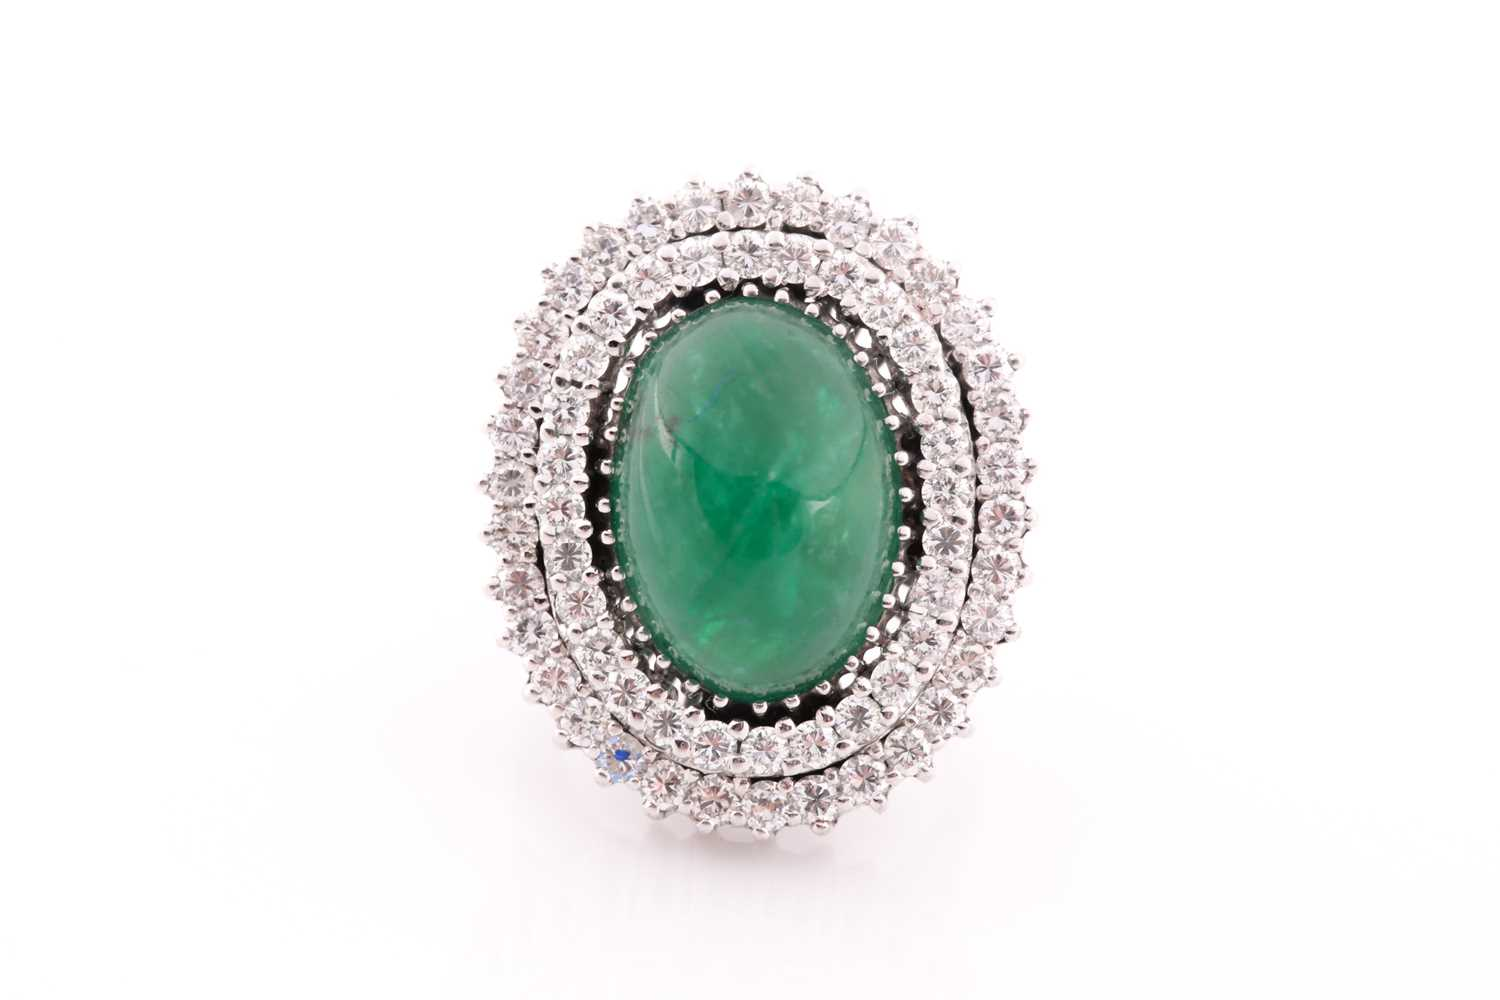 A diamond and emerald cocktail ring, circa 1960s, centred with an oval cabochon emerald, measuring